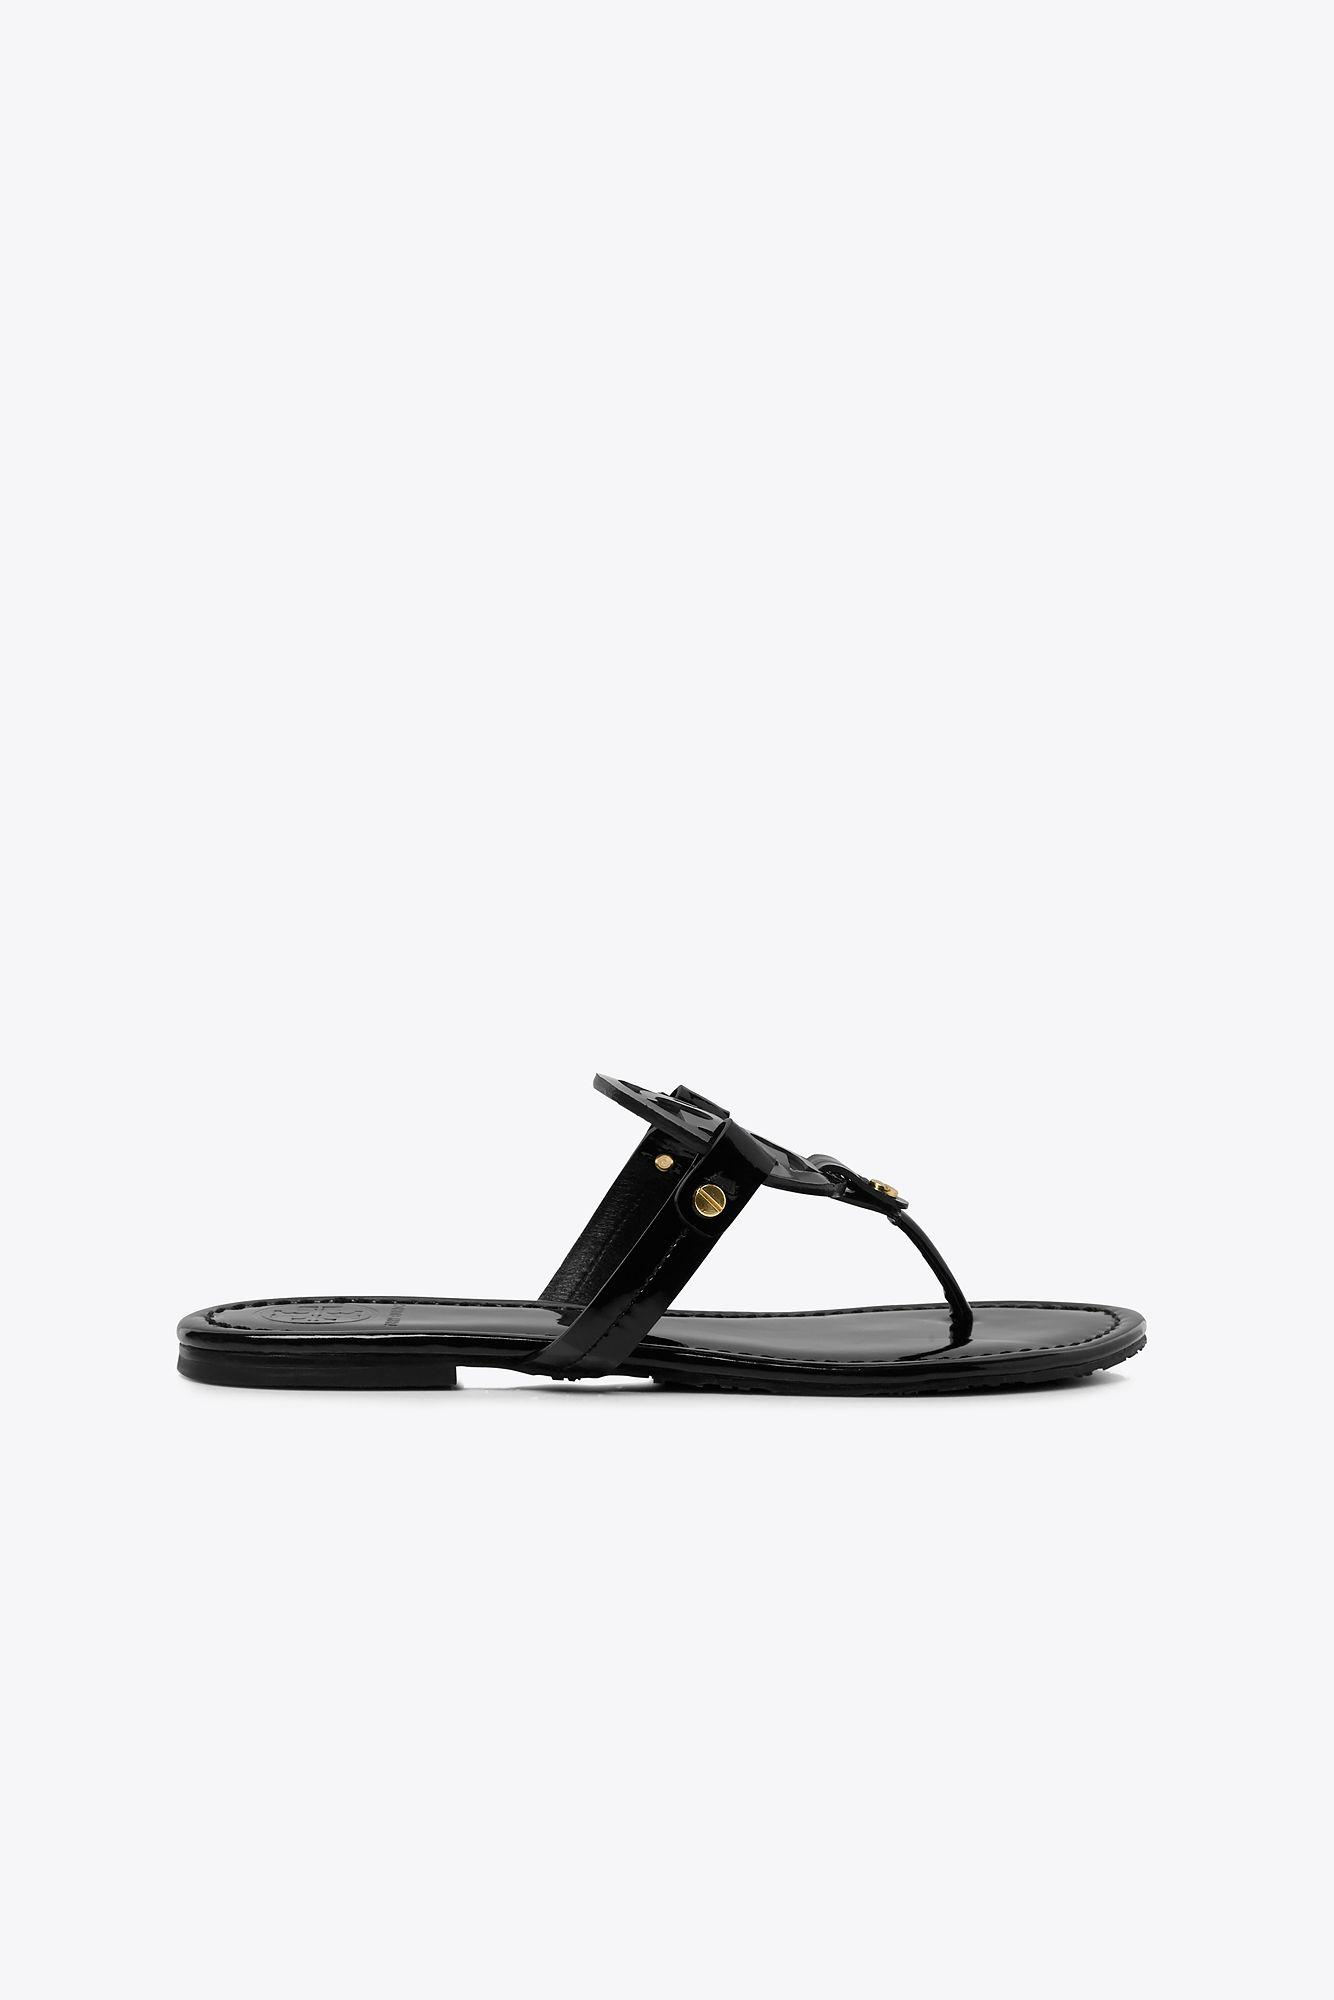 b1901ed85361 Tory Burch Miller Flip Flop in Black - Save 57.666666666666664% - Lyst